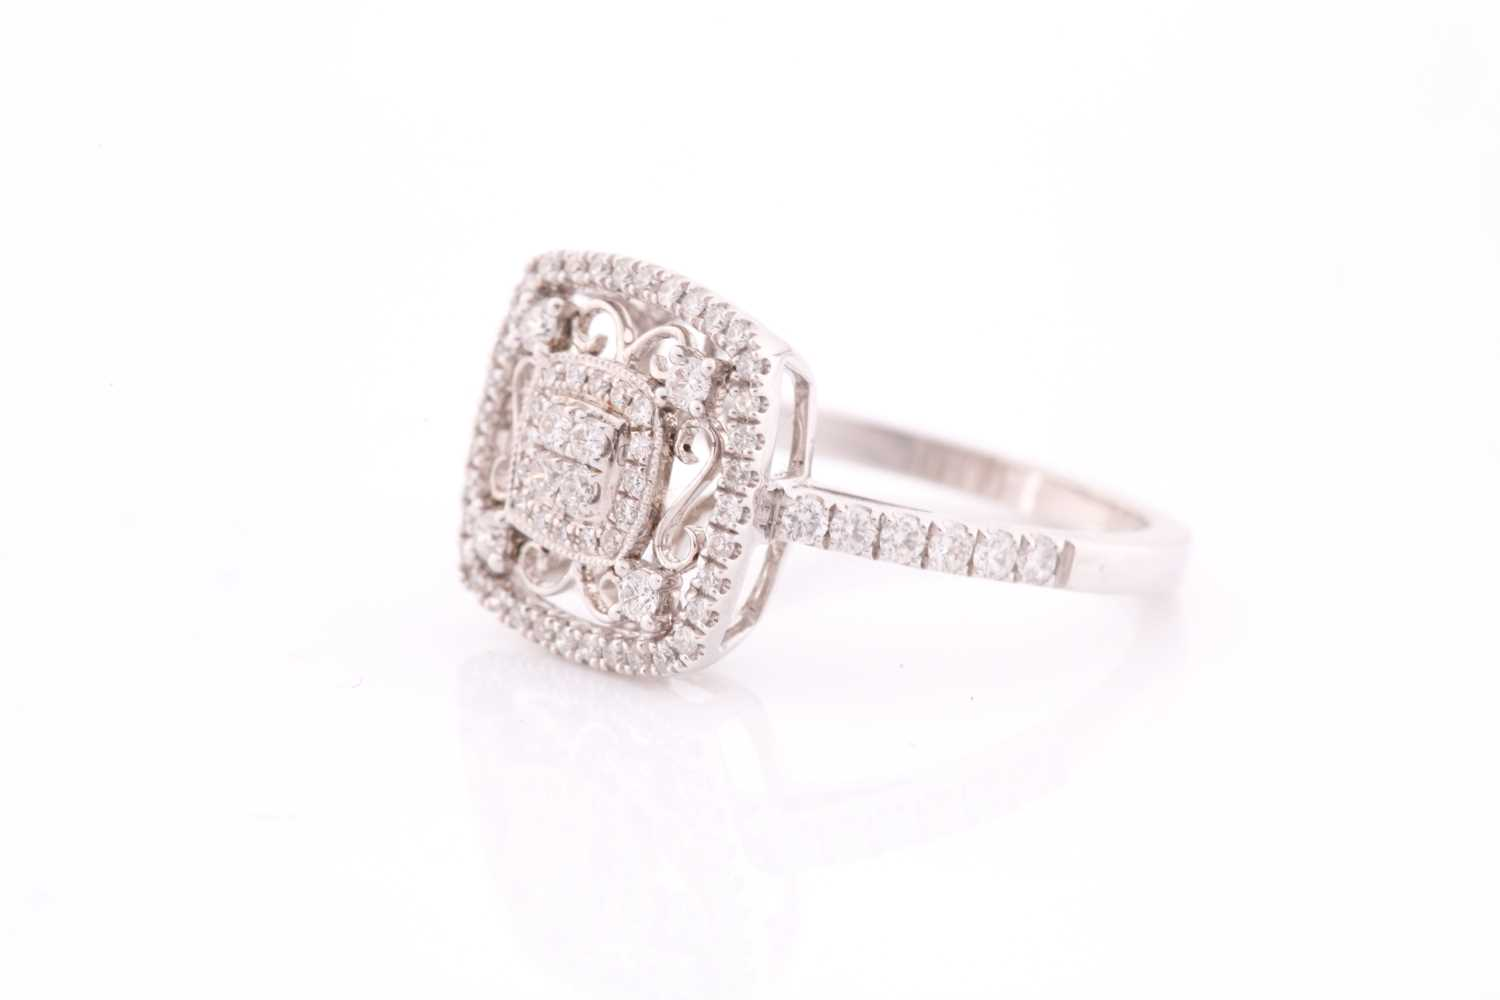 An 18ct white gold and diamond ring, the openwork mount with filigree style decoration, inset with - Image 4 of 4